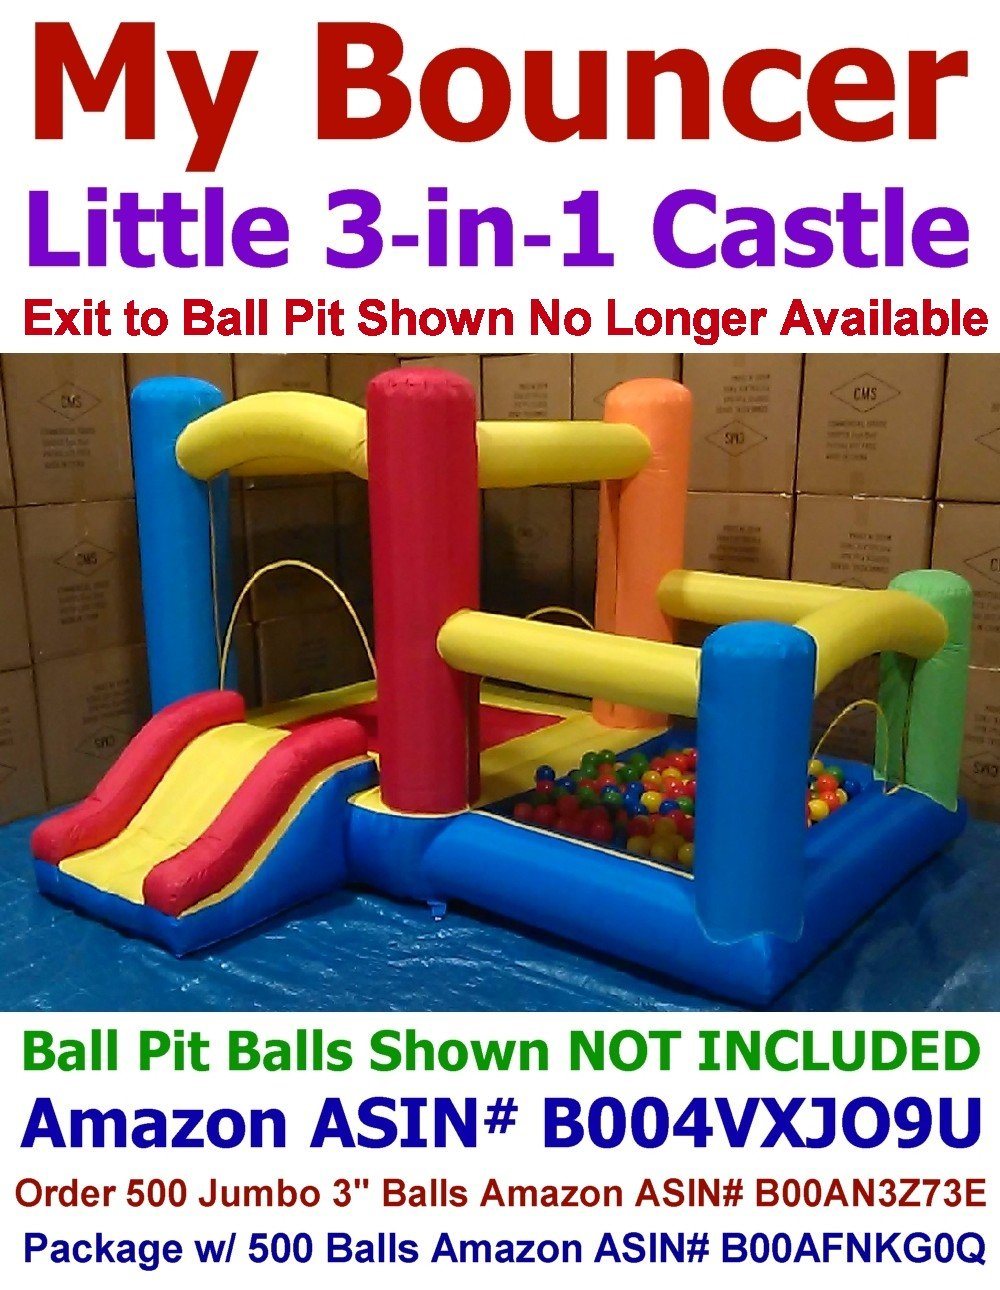 My Bouncer 3-in-1 Little Castle Bounce 118'' L X 102'' D X 72'' H with Attached Ball Pit and Slide